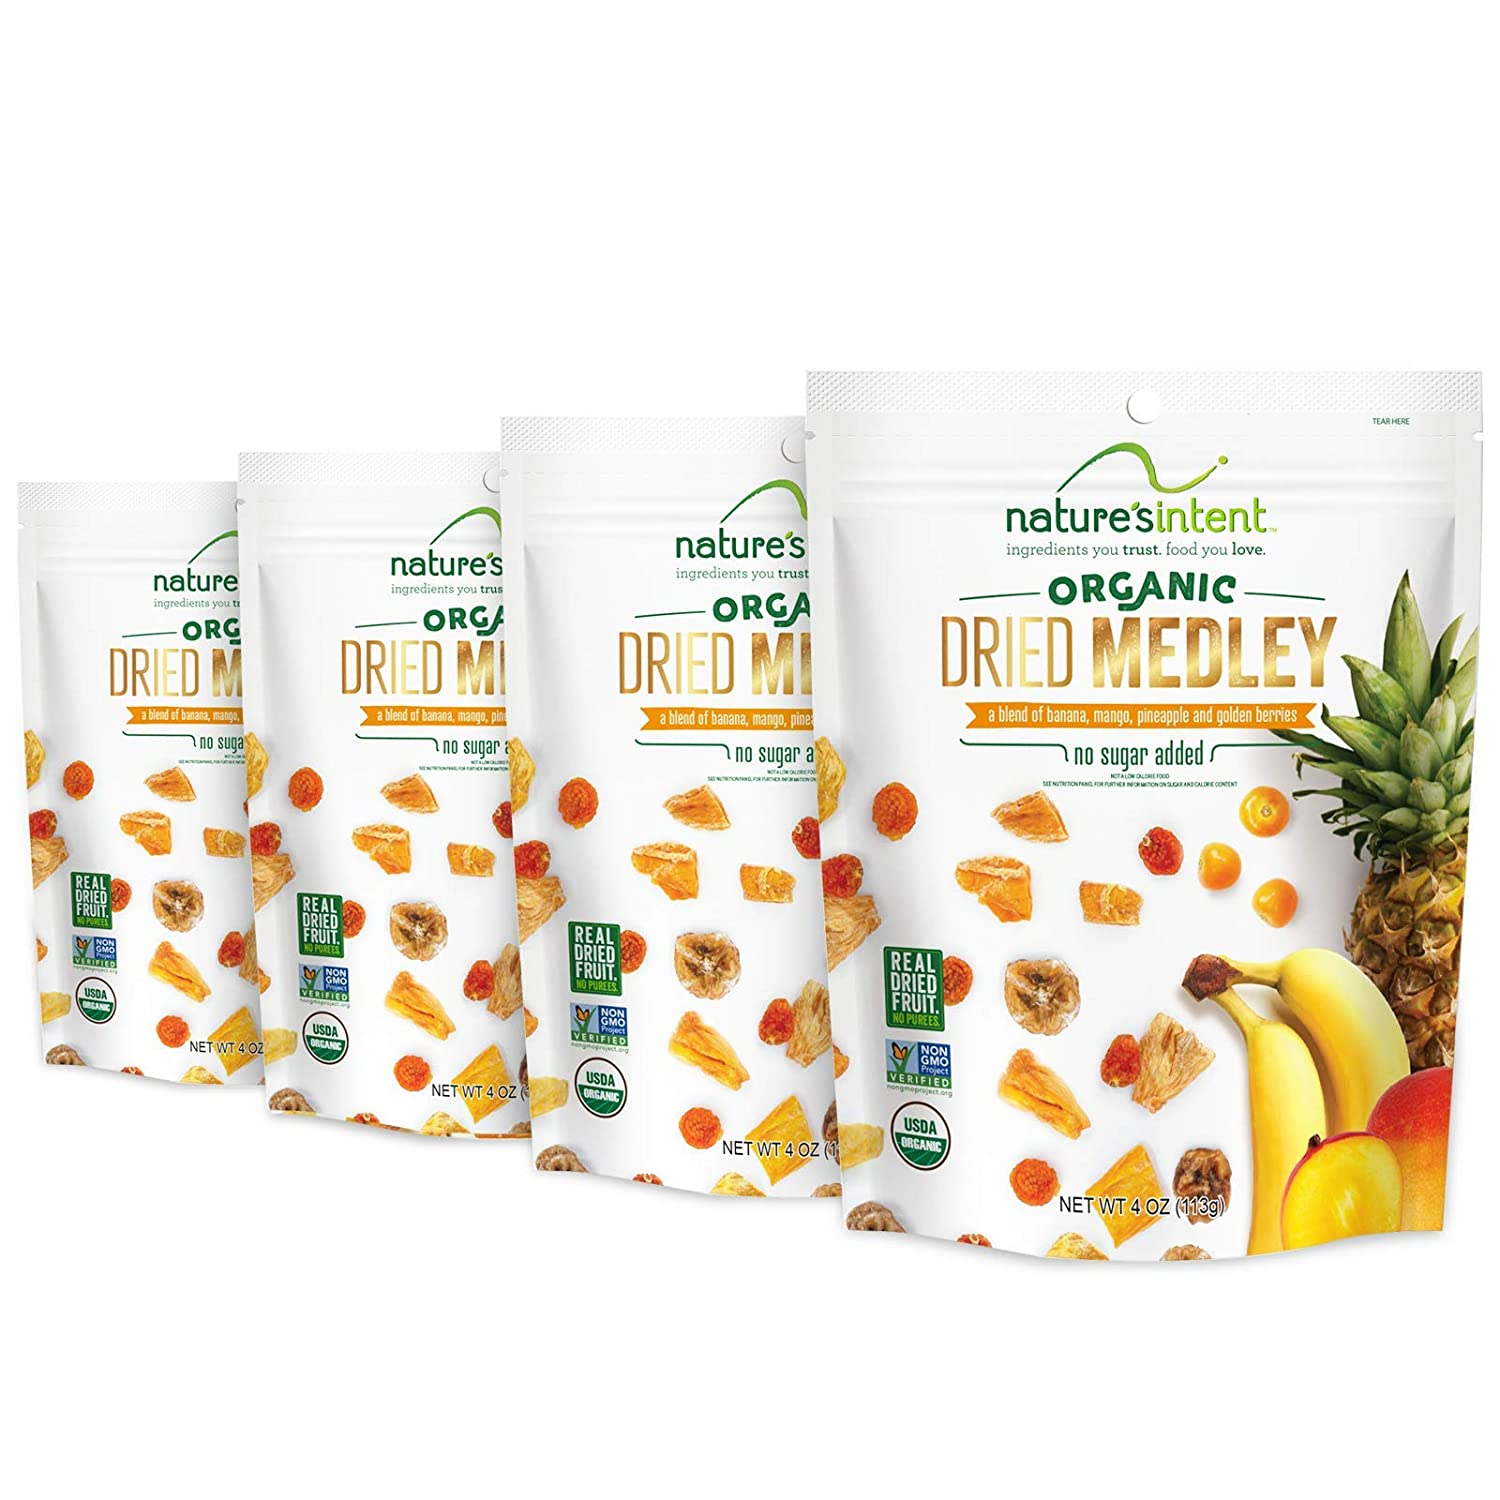 Nature's Intent Organic Dried Medley - 4 Pack x 3.5 Ounce - A Healthy Snack - Vegan, Vegetarian, USDA Organic, Non-GMO, and Gluten-Free with No Added Sugars, or Preservatives - Real Dried Fruit